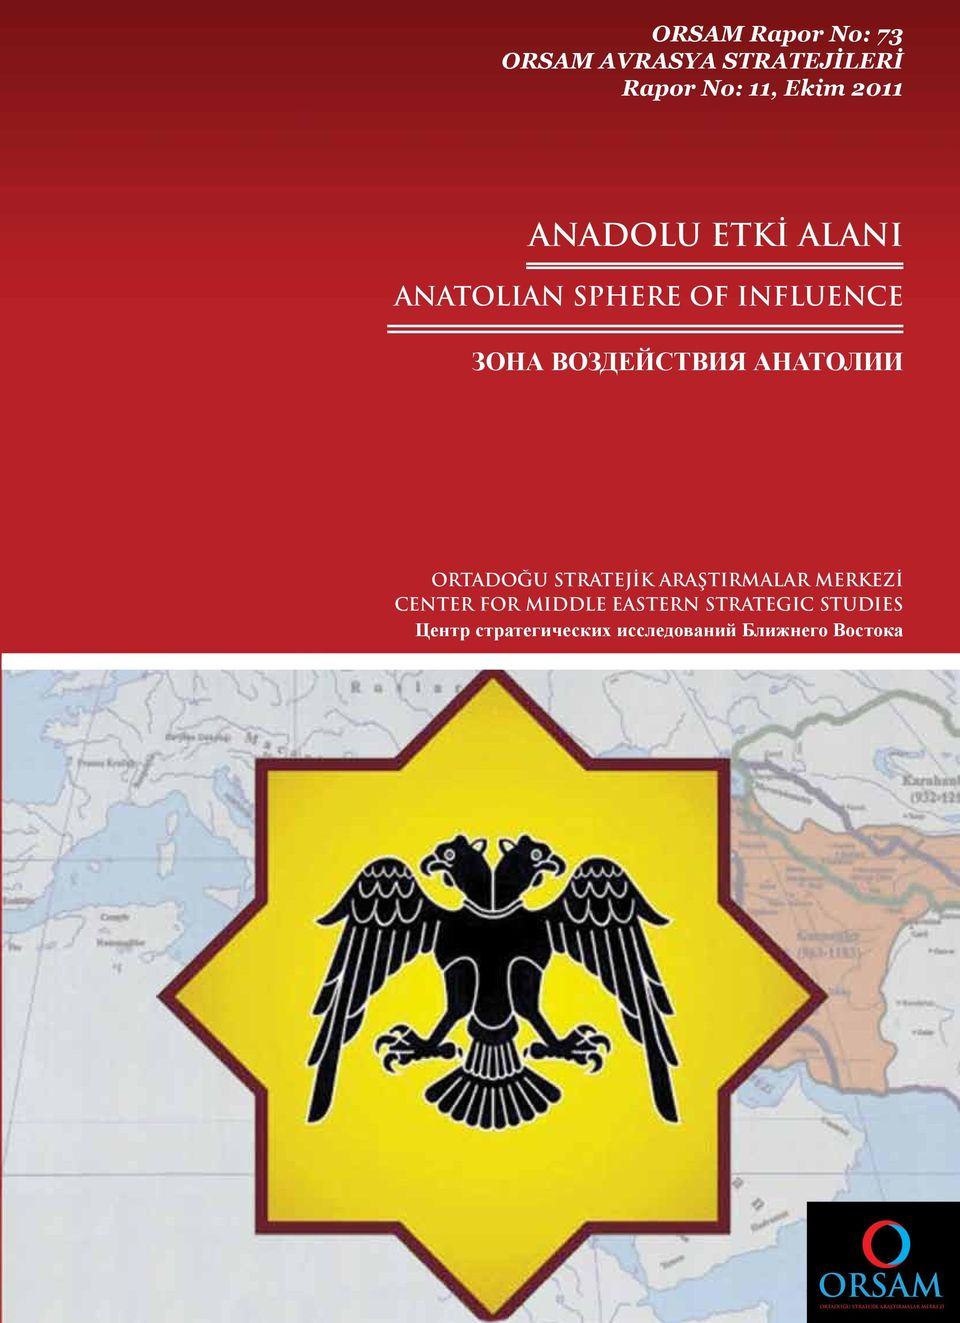 STRATEJİK ARAŞTIRMALAR MERKEZİ CENTER FOR MIDDLE EASTERN STRATEGIC STUDIES Центр